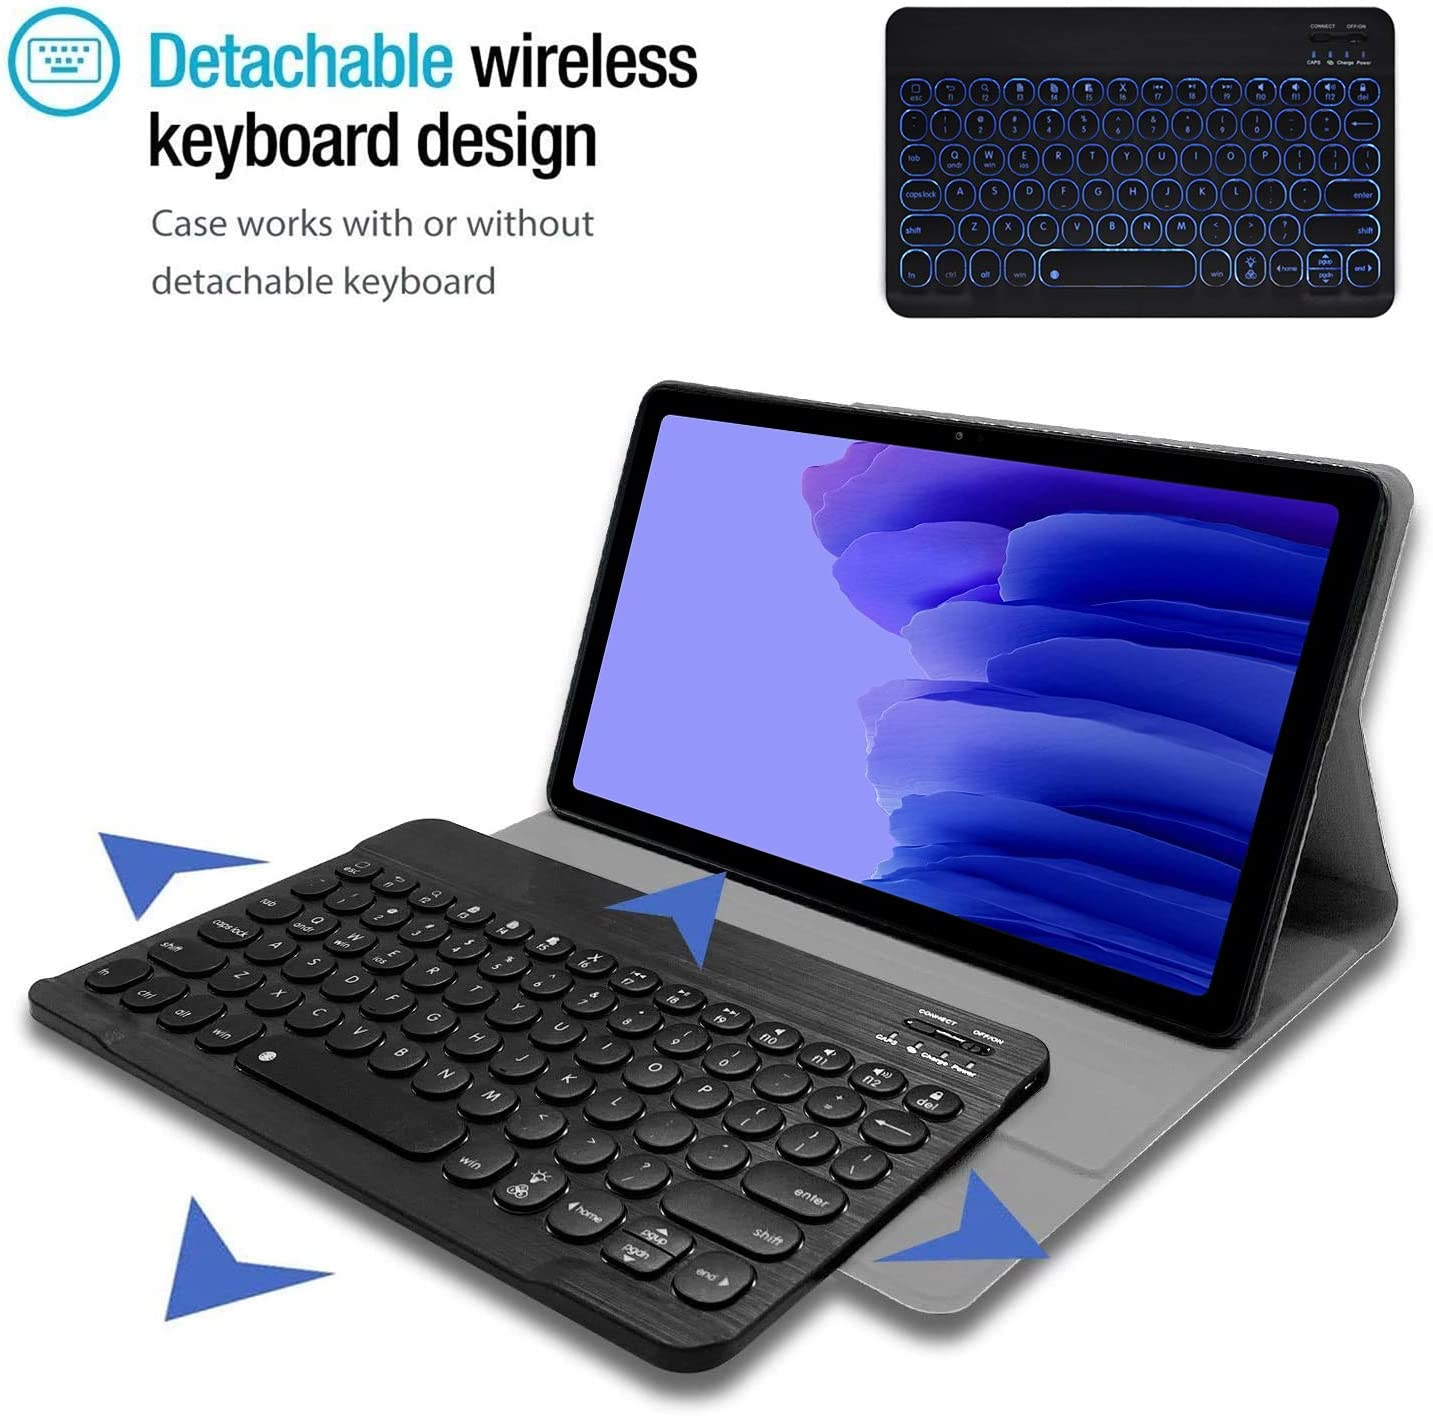 Black 7 Color Light Detachable Wireless Keyboard with PU Folio Stand Cover for Samsung Galaxy Tab S6 Lite 10.4 Inch 2020 Backlit,SM-P610,SM-P615 Wineecy Galaxy Tab S6 Lite 2020 Keyboard Case 10.4